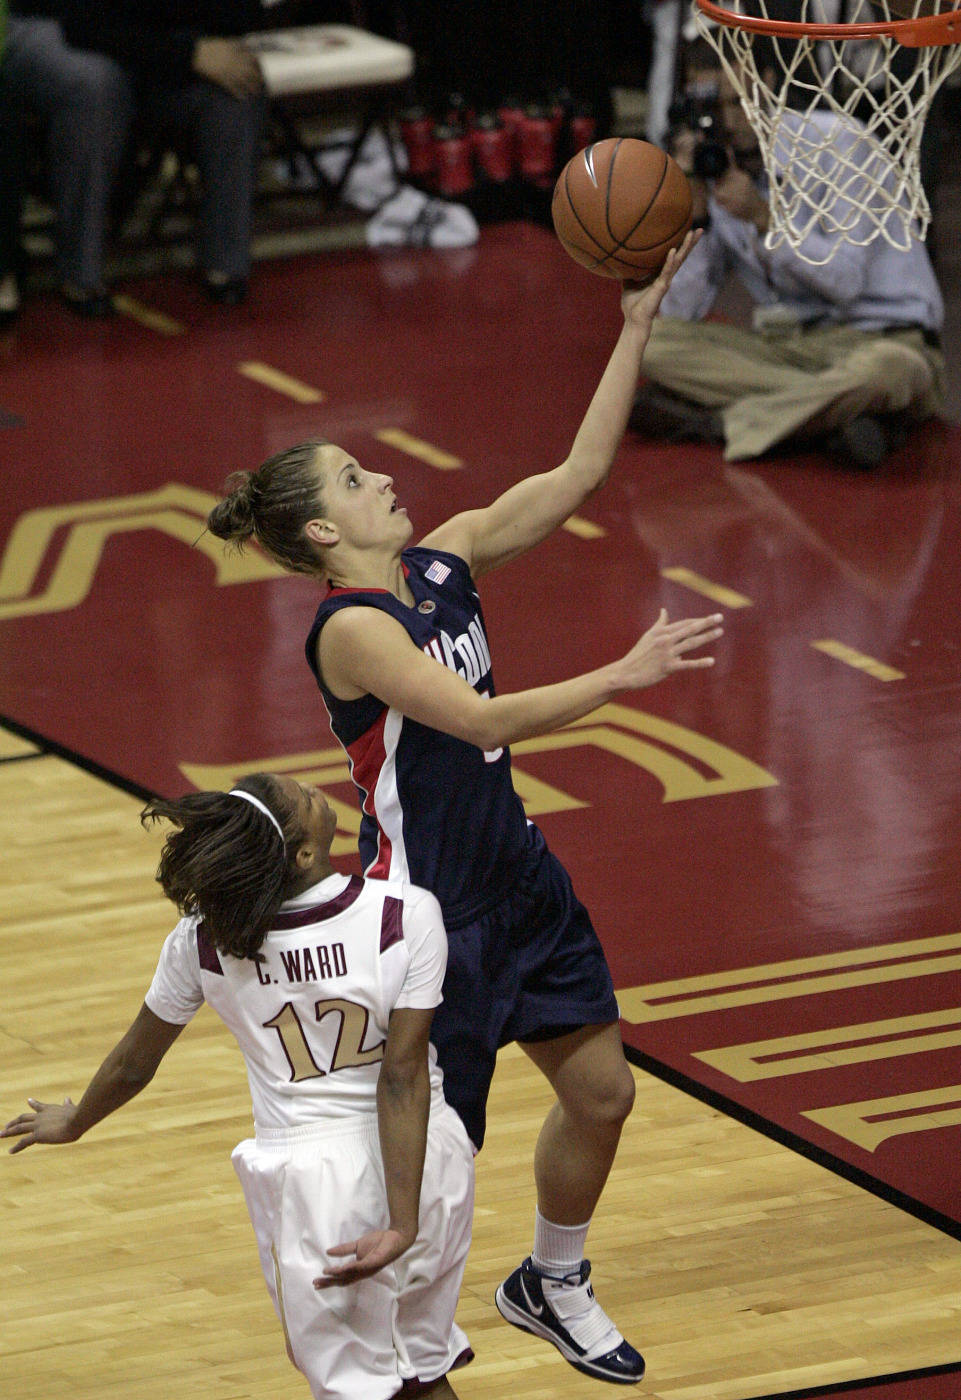 Connecticut's Caroline Doty drives the lane and scores past the defense of Florida State's Courtney Ward in the first half of an NCAA college basketball game Monday, Dec. 28, 2009, in Tallahassee, Fla. (AP Photo/Steve Cannon)